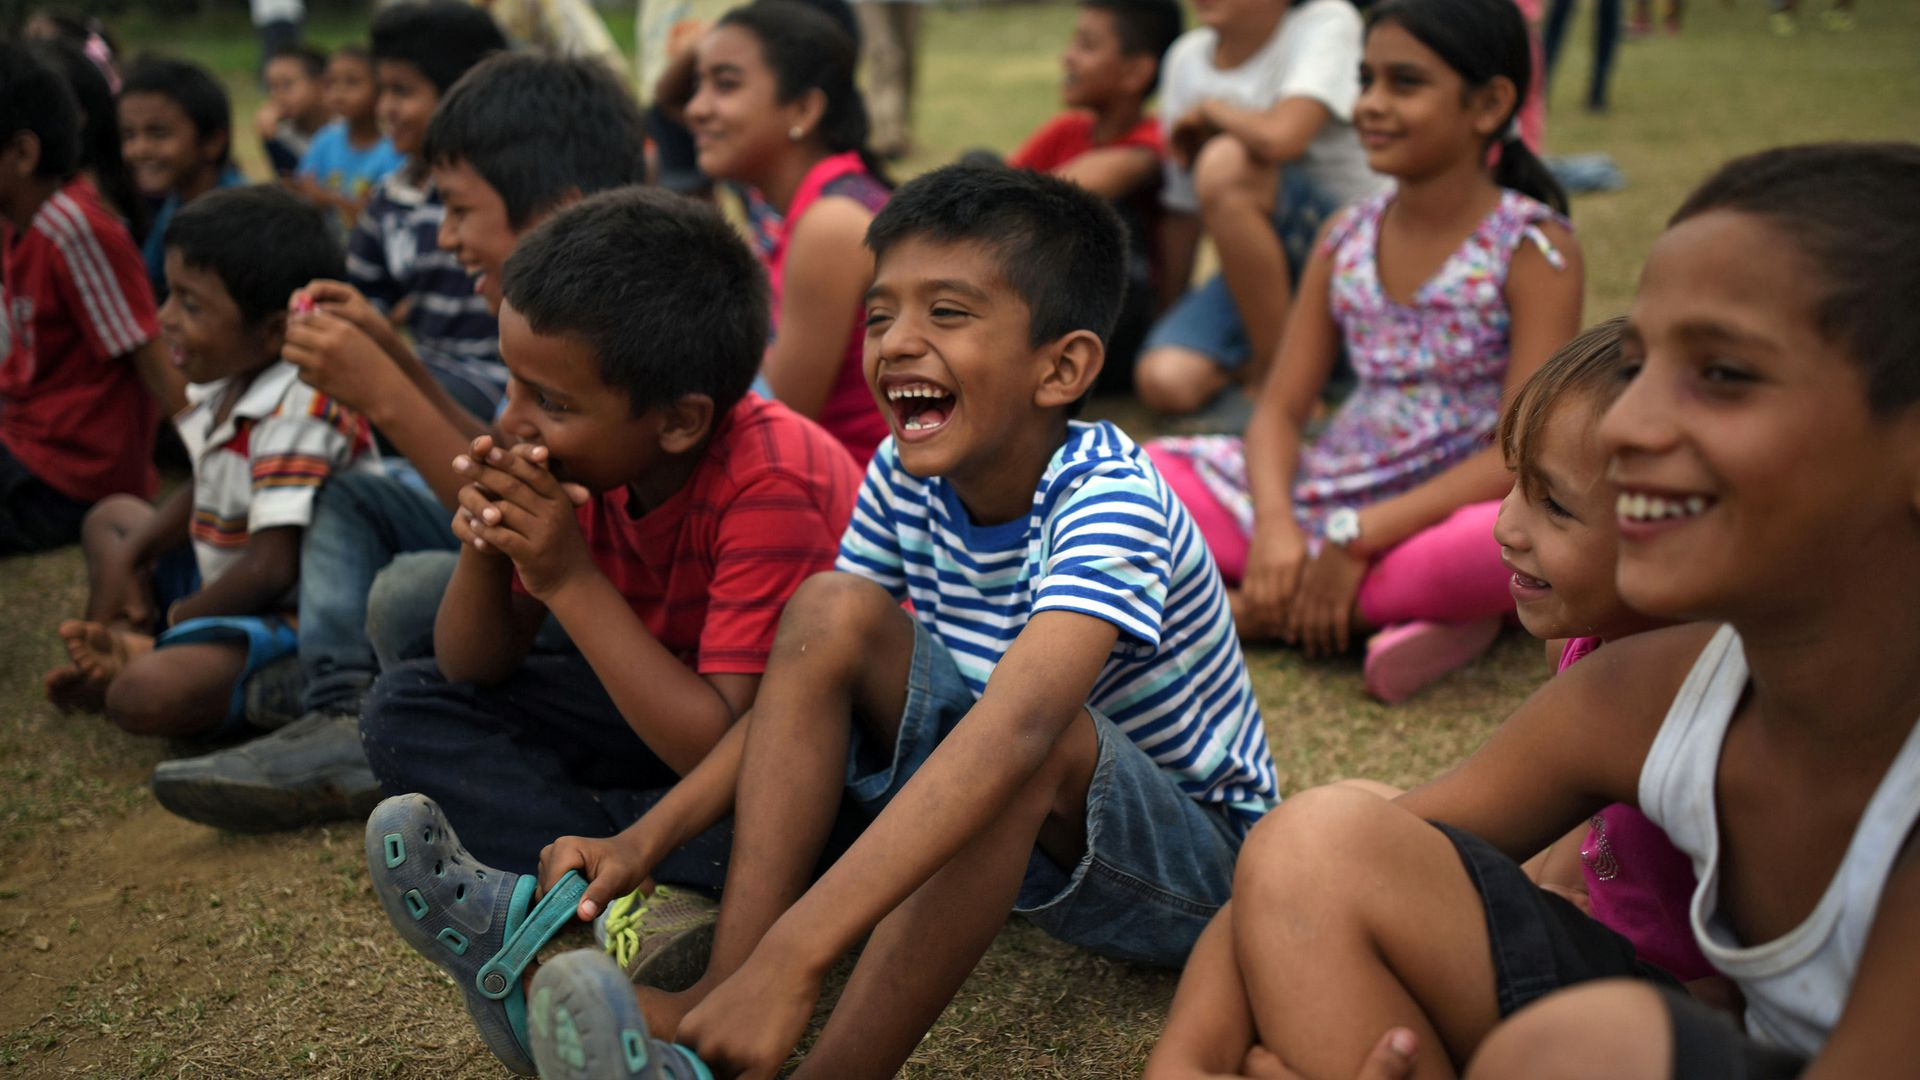 Central American migrant children laugh at a show put on by a clown.